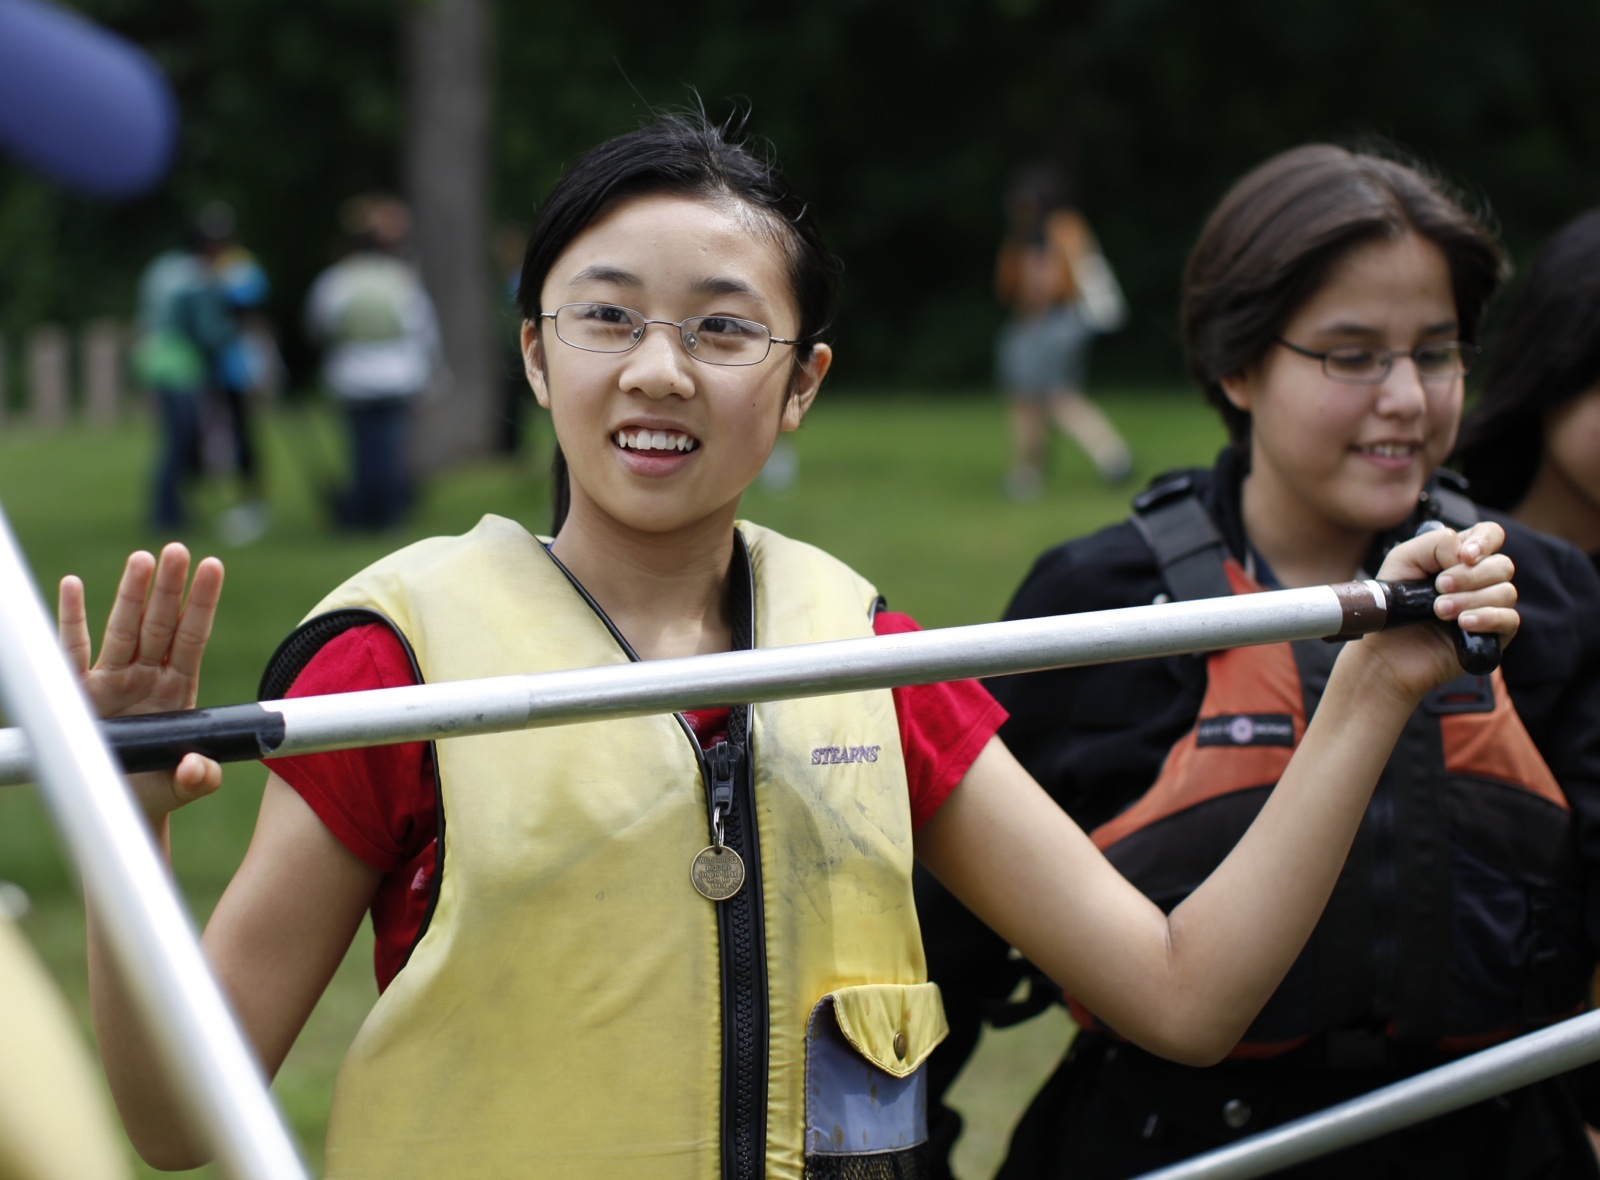 A girl in a life jacket looks towards her guide as she practices holding a canoe paddle.